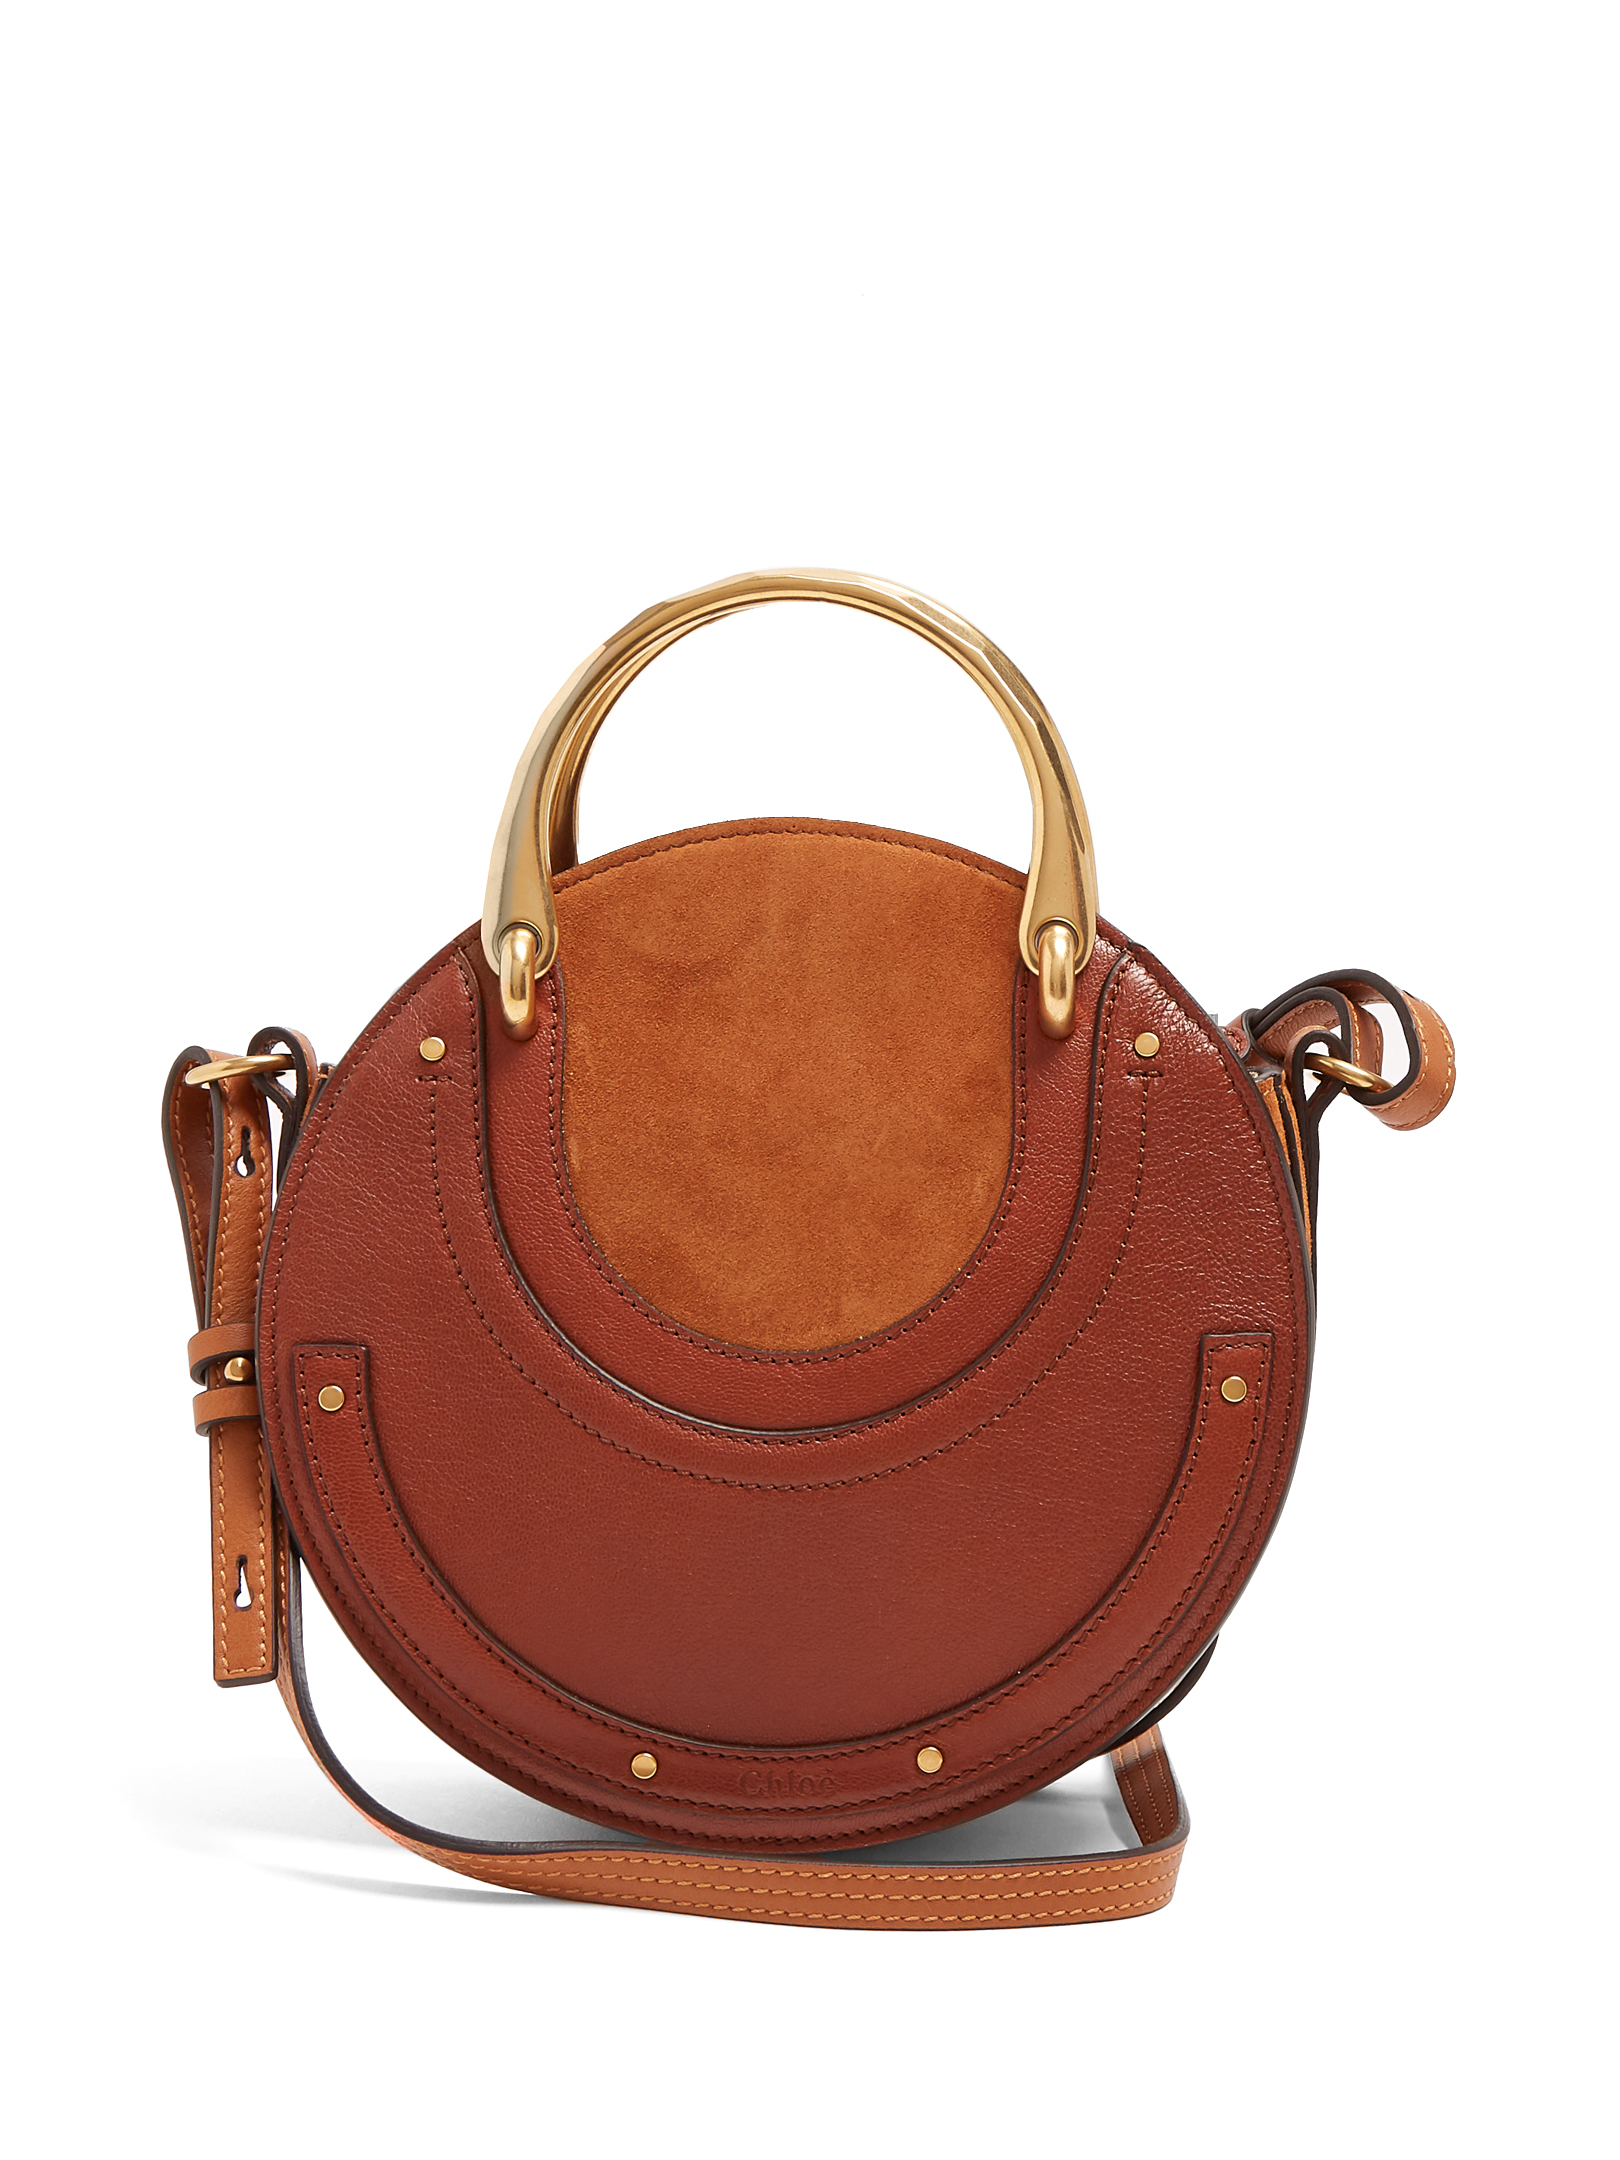 NYFW Inspired Bags Our Editors Are Crushing On